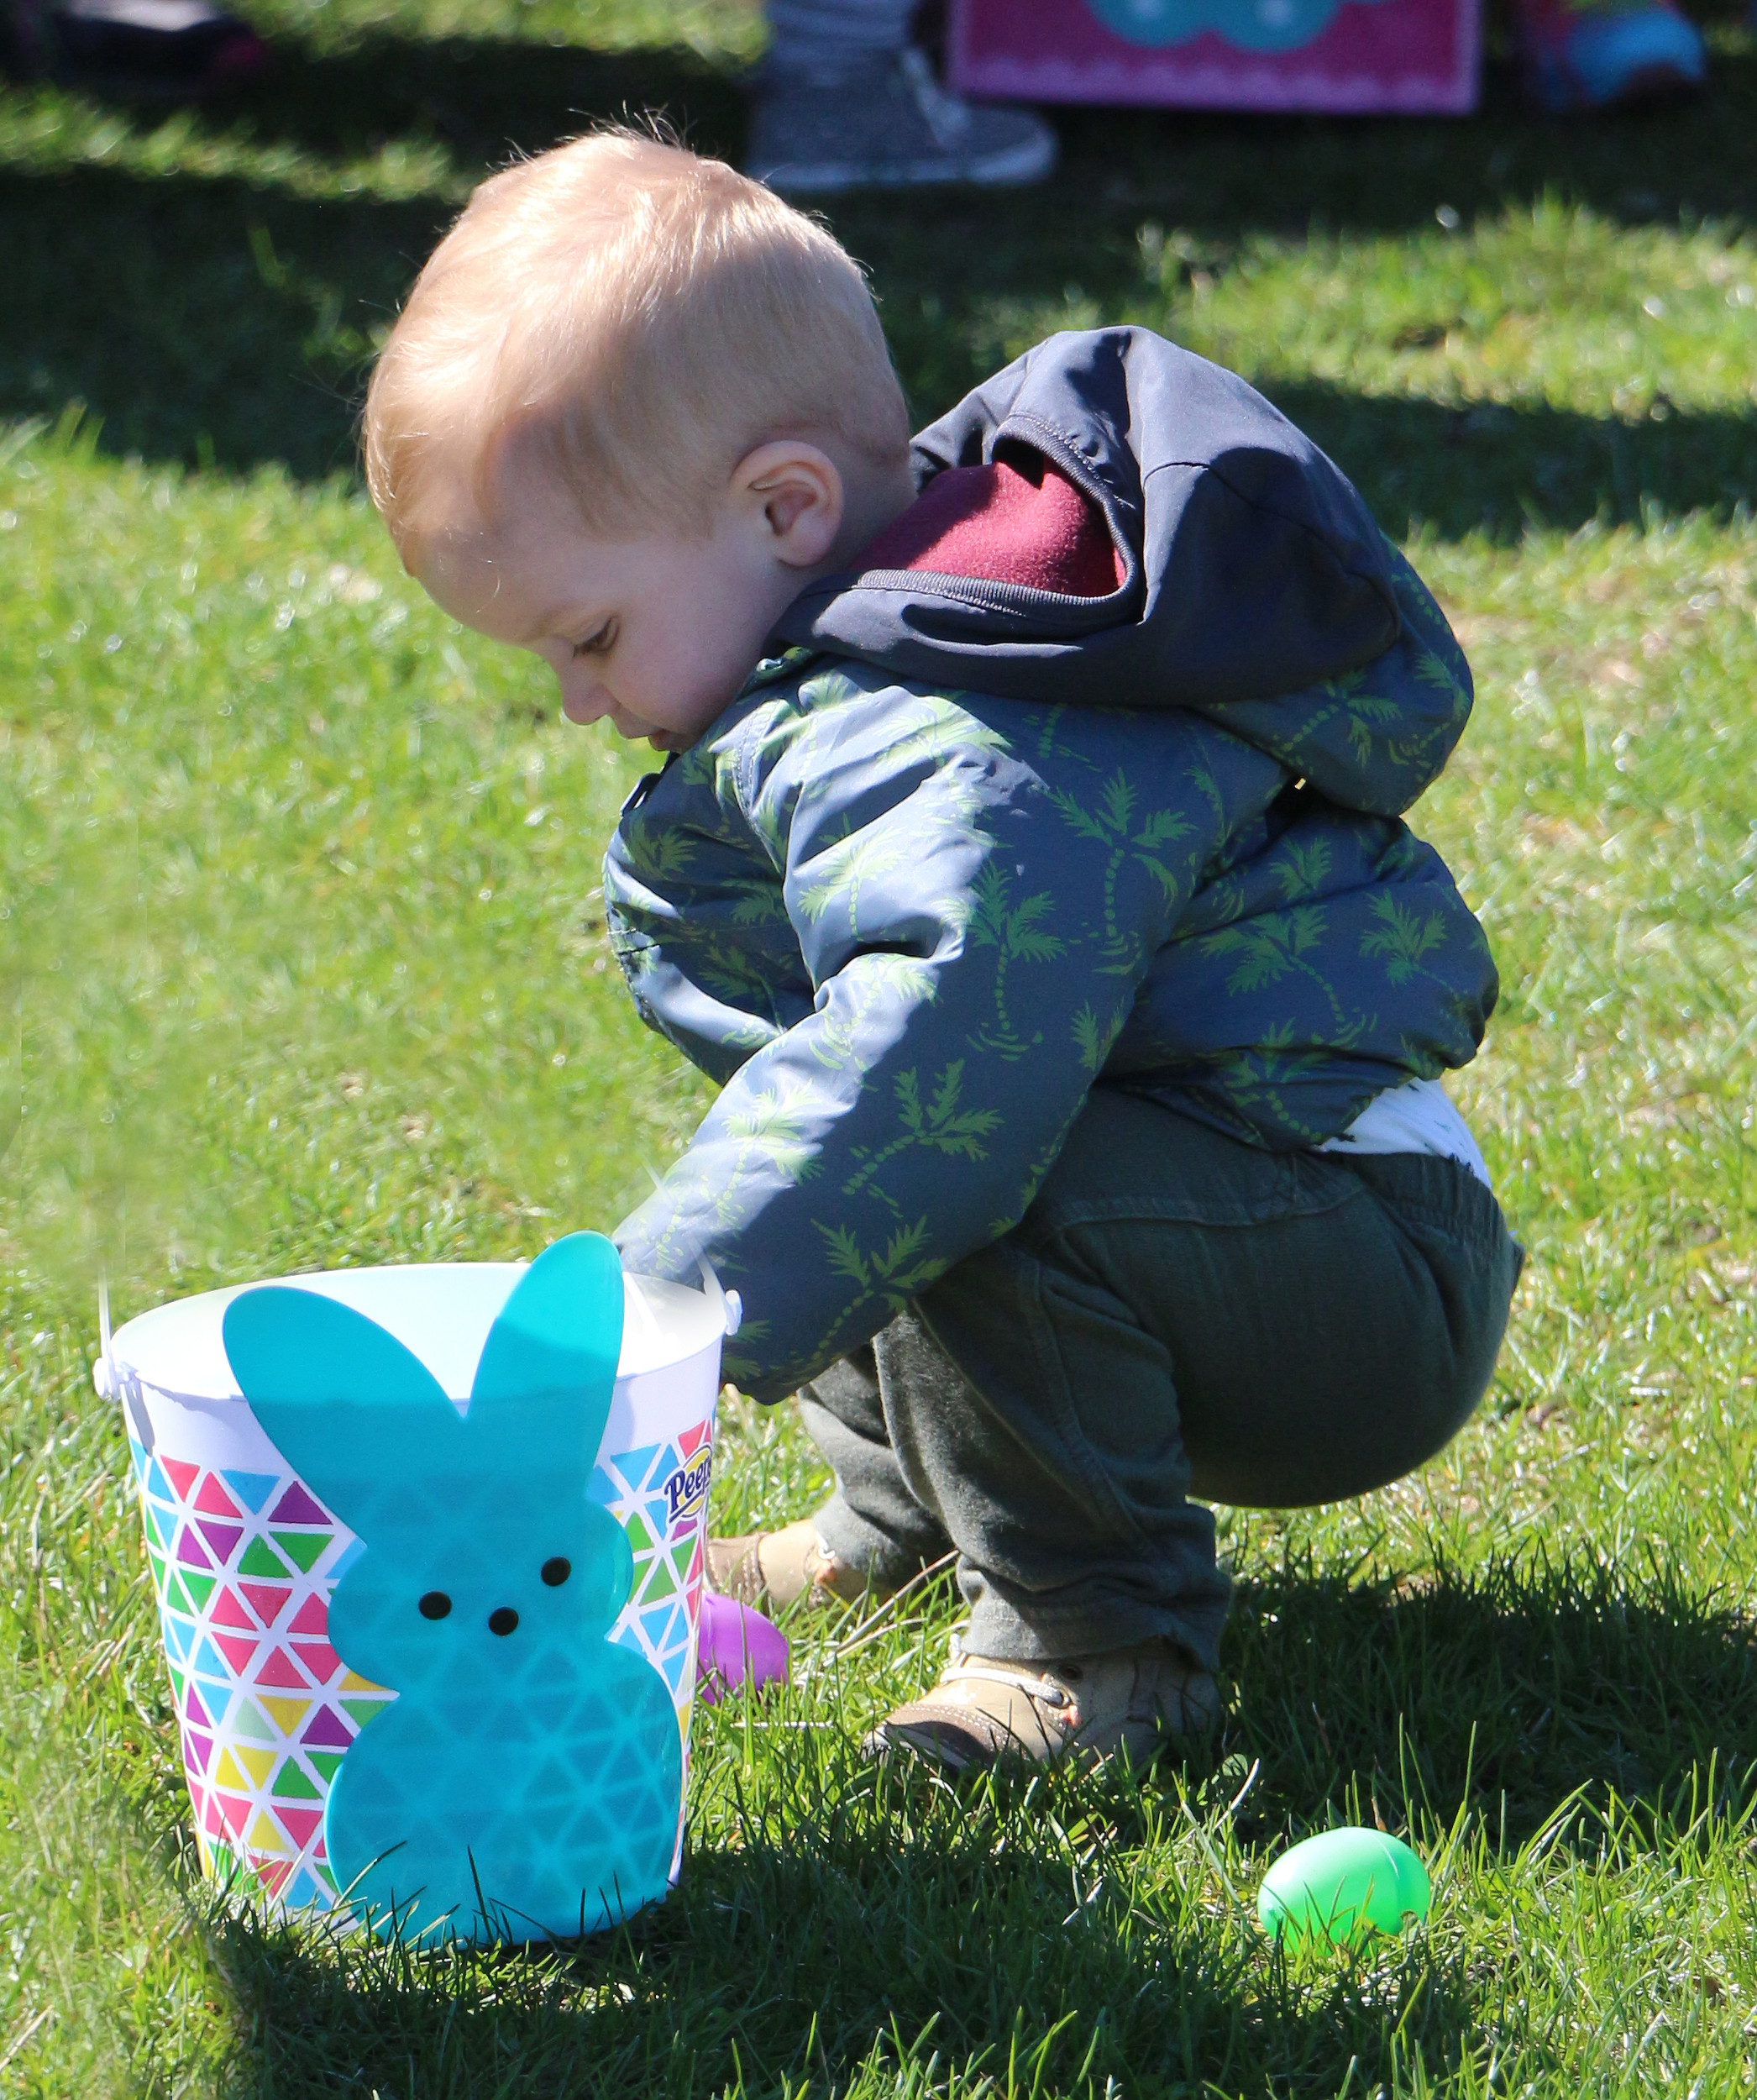 Charlie Alliegro, 18 months, collected eggs for his Easter basket in Oceanside